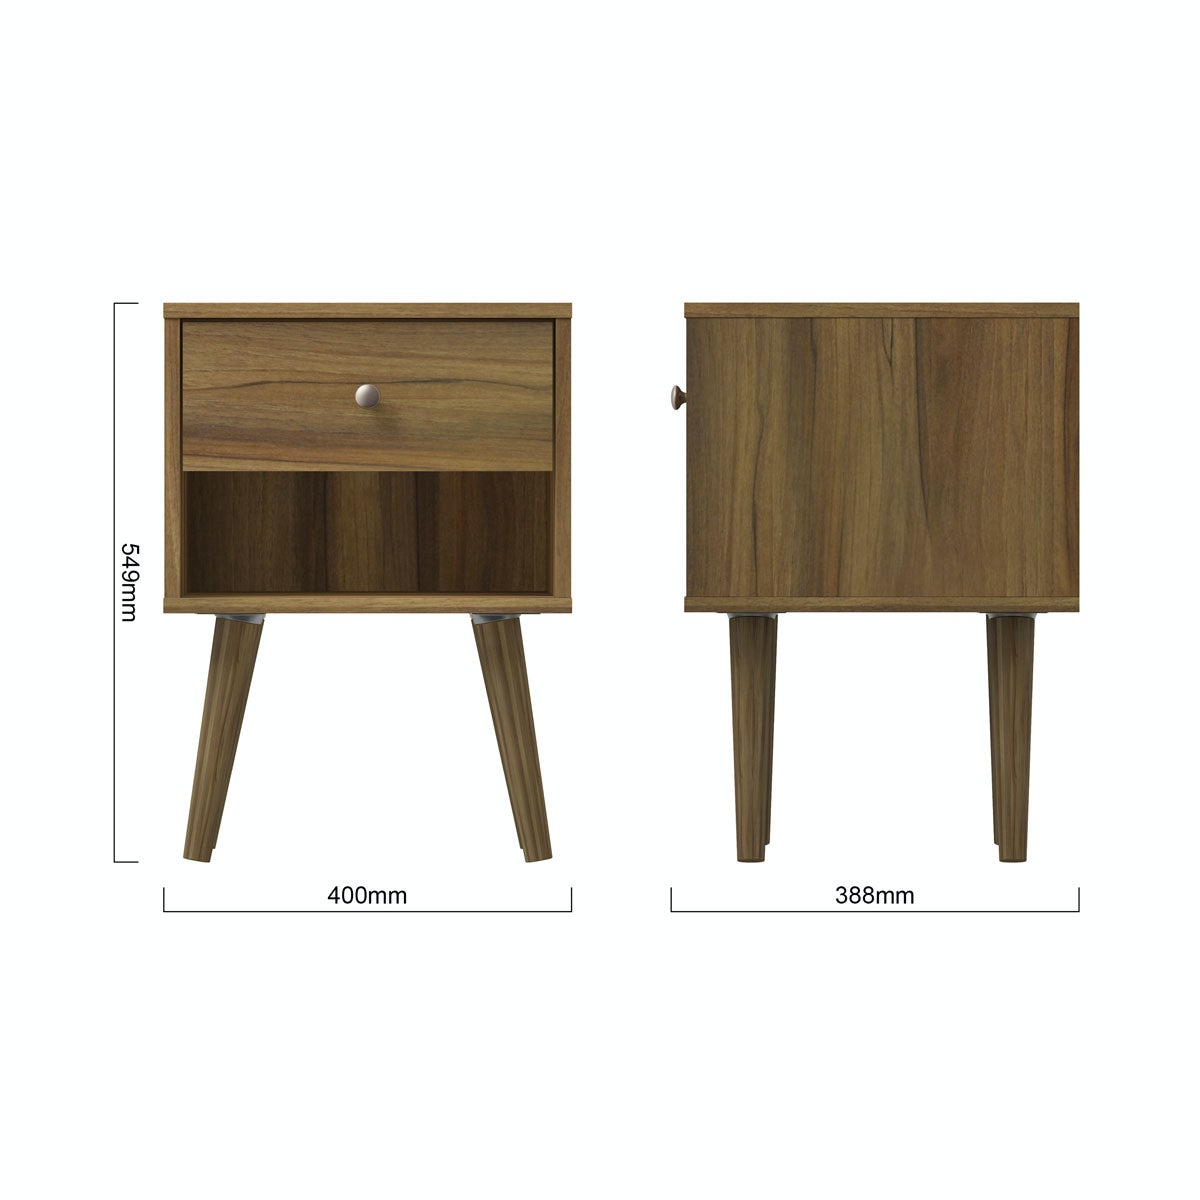 Dimensions for MFI Helsinki Walnut bedside